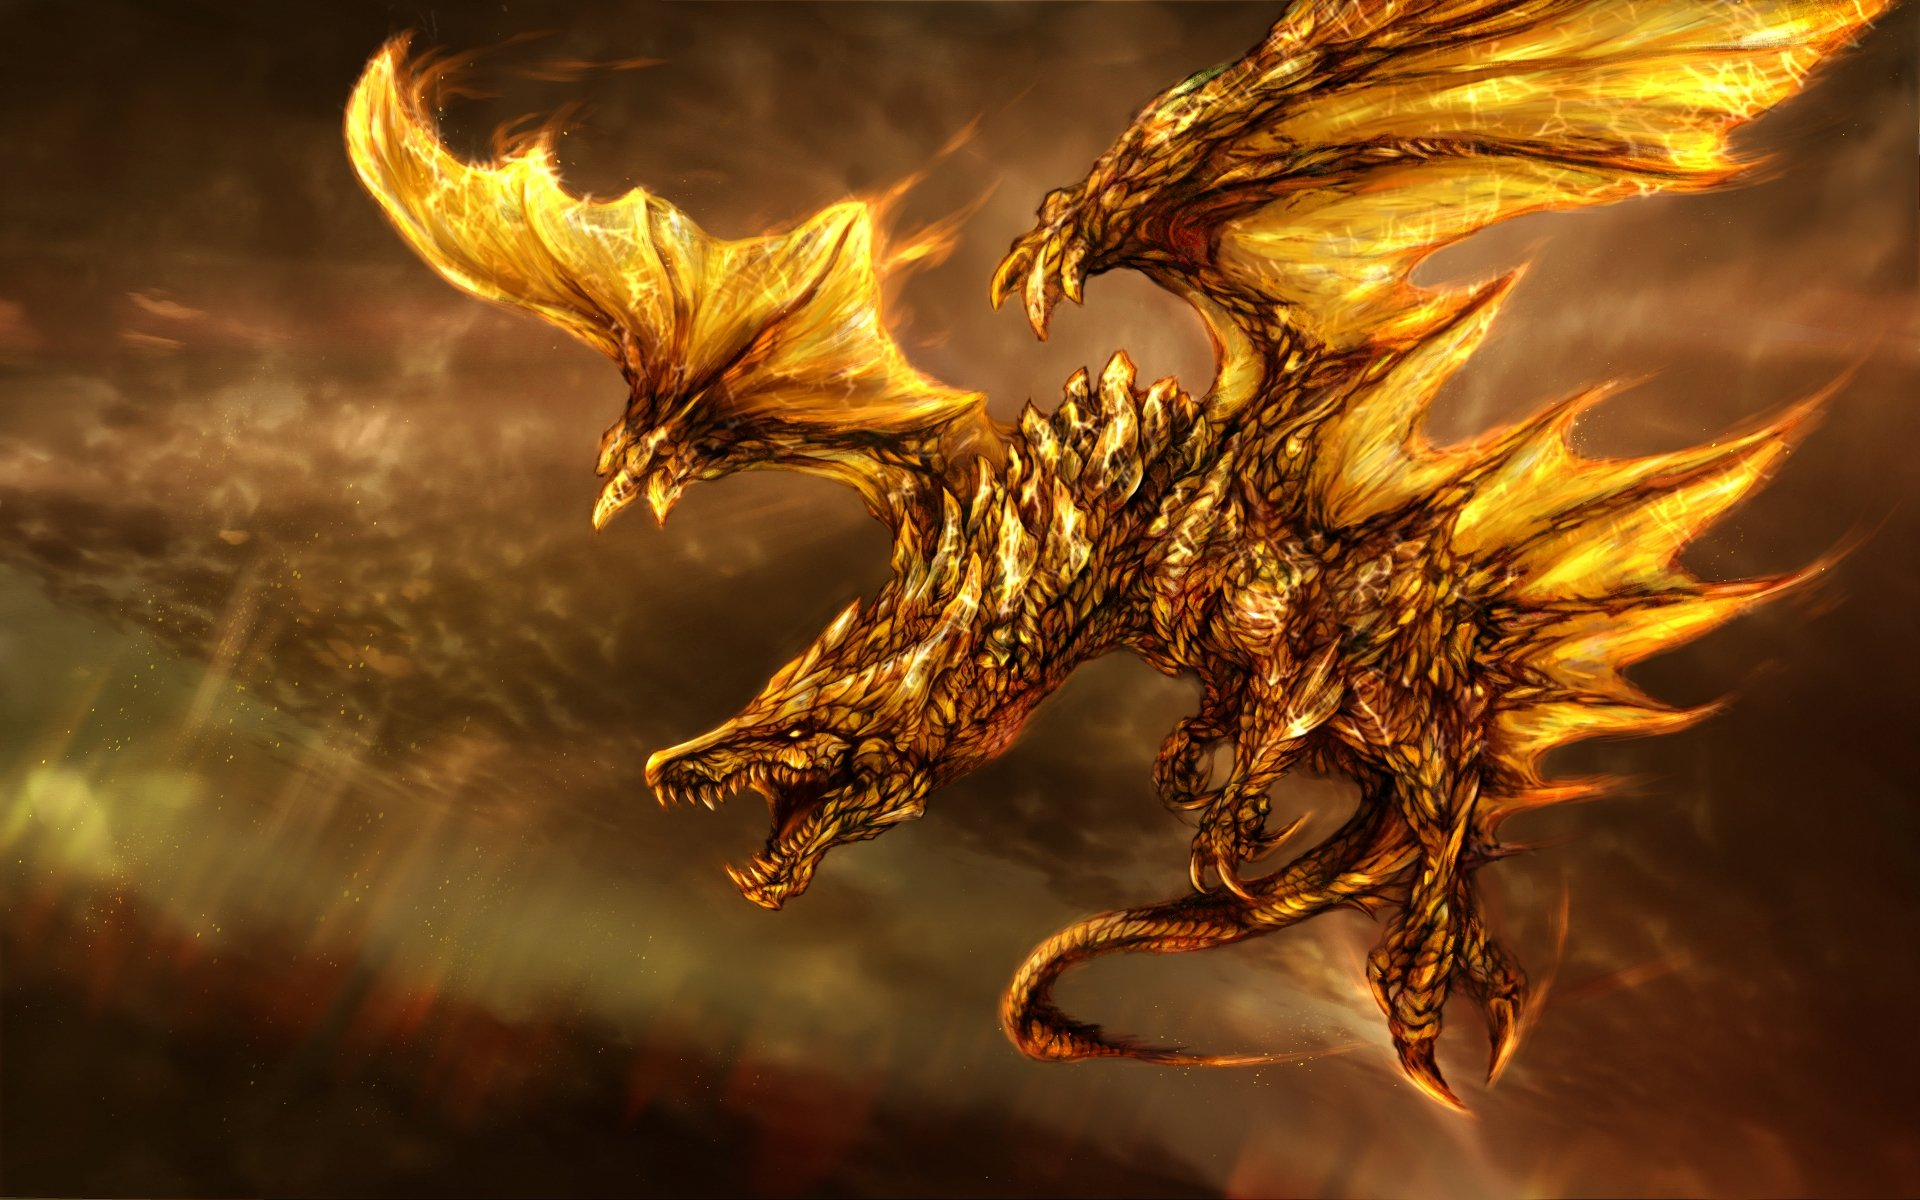 Cool dragon wallpaper 41604 1920x1200 px hdwallsource cool dragon wallpaper 41604 voltagebd Gallery